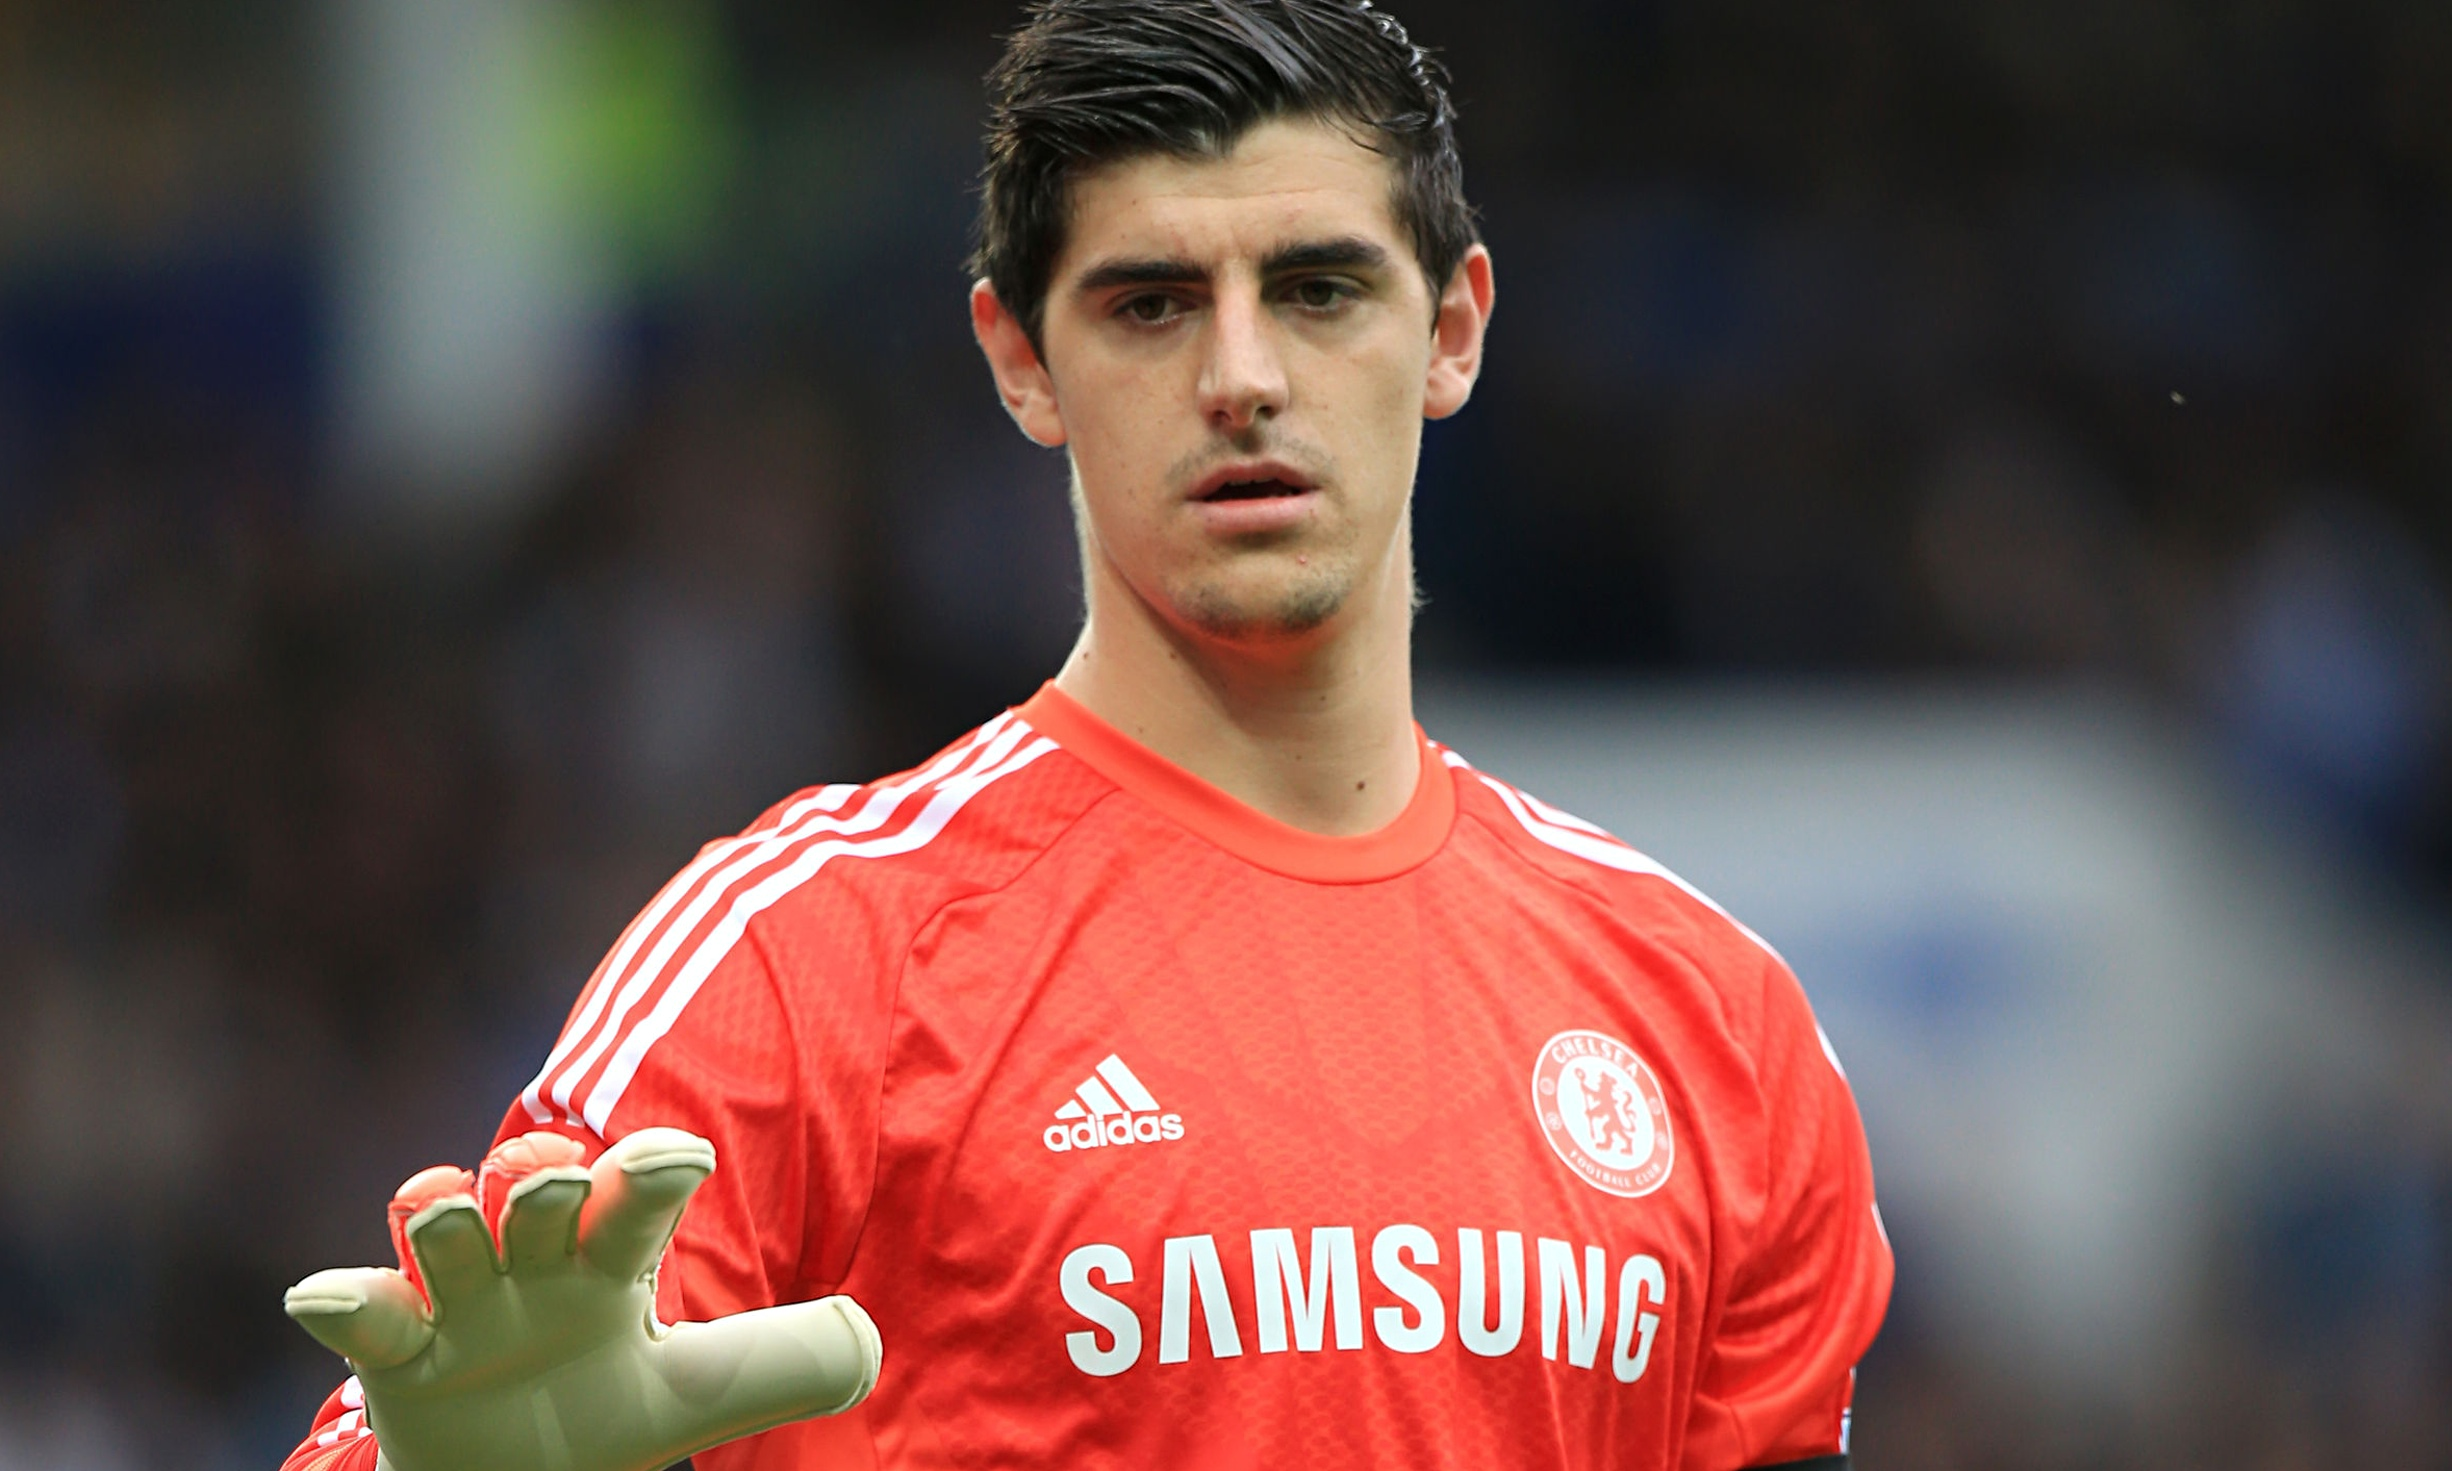 10 Facts About Thibaut Courtois